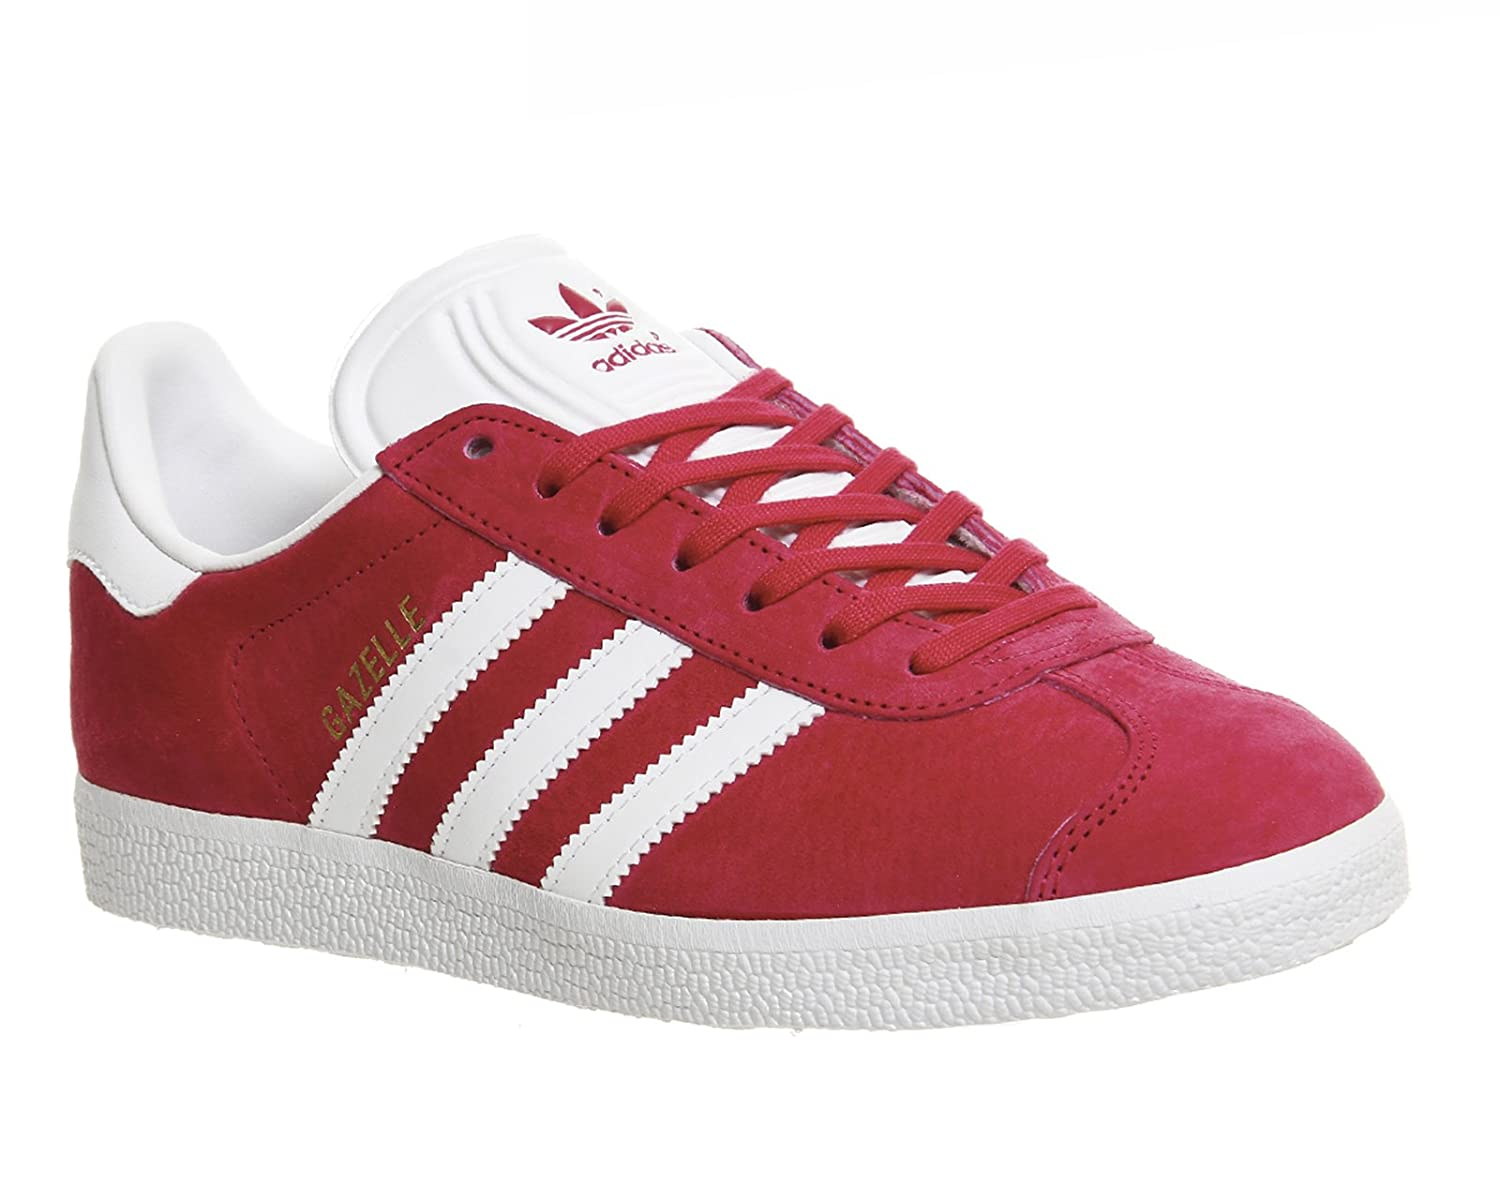 TALLA 44 EU. adidas Originals Gazelle, Zapatillas Unisex Adulto